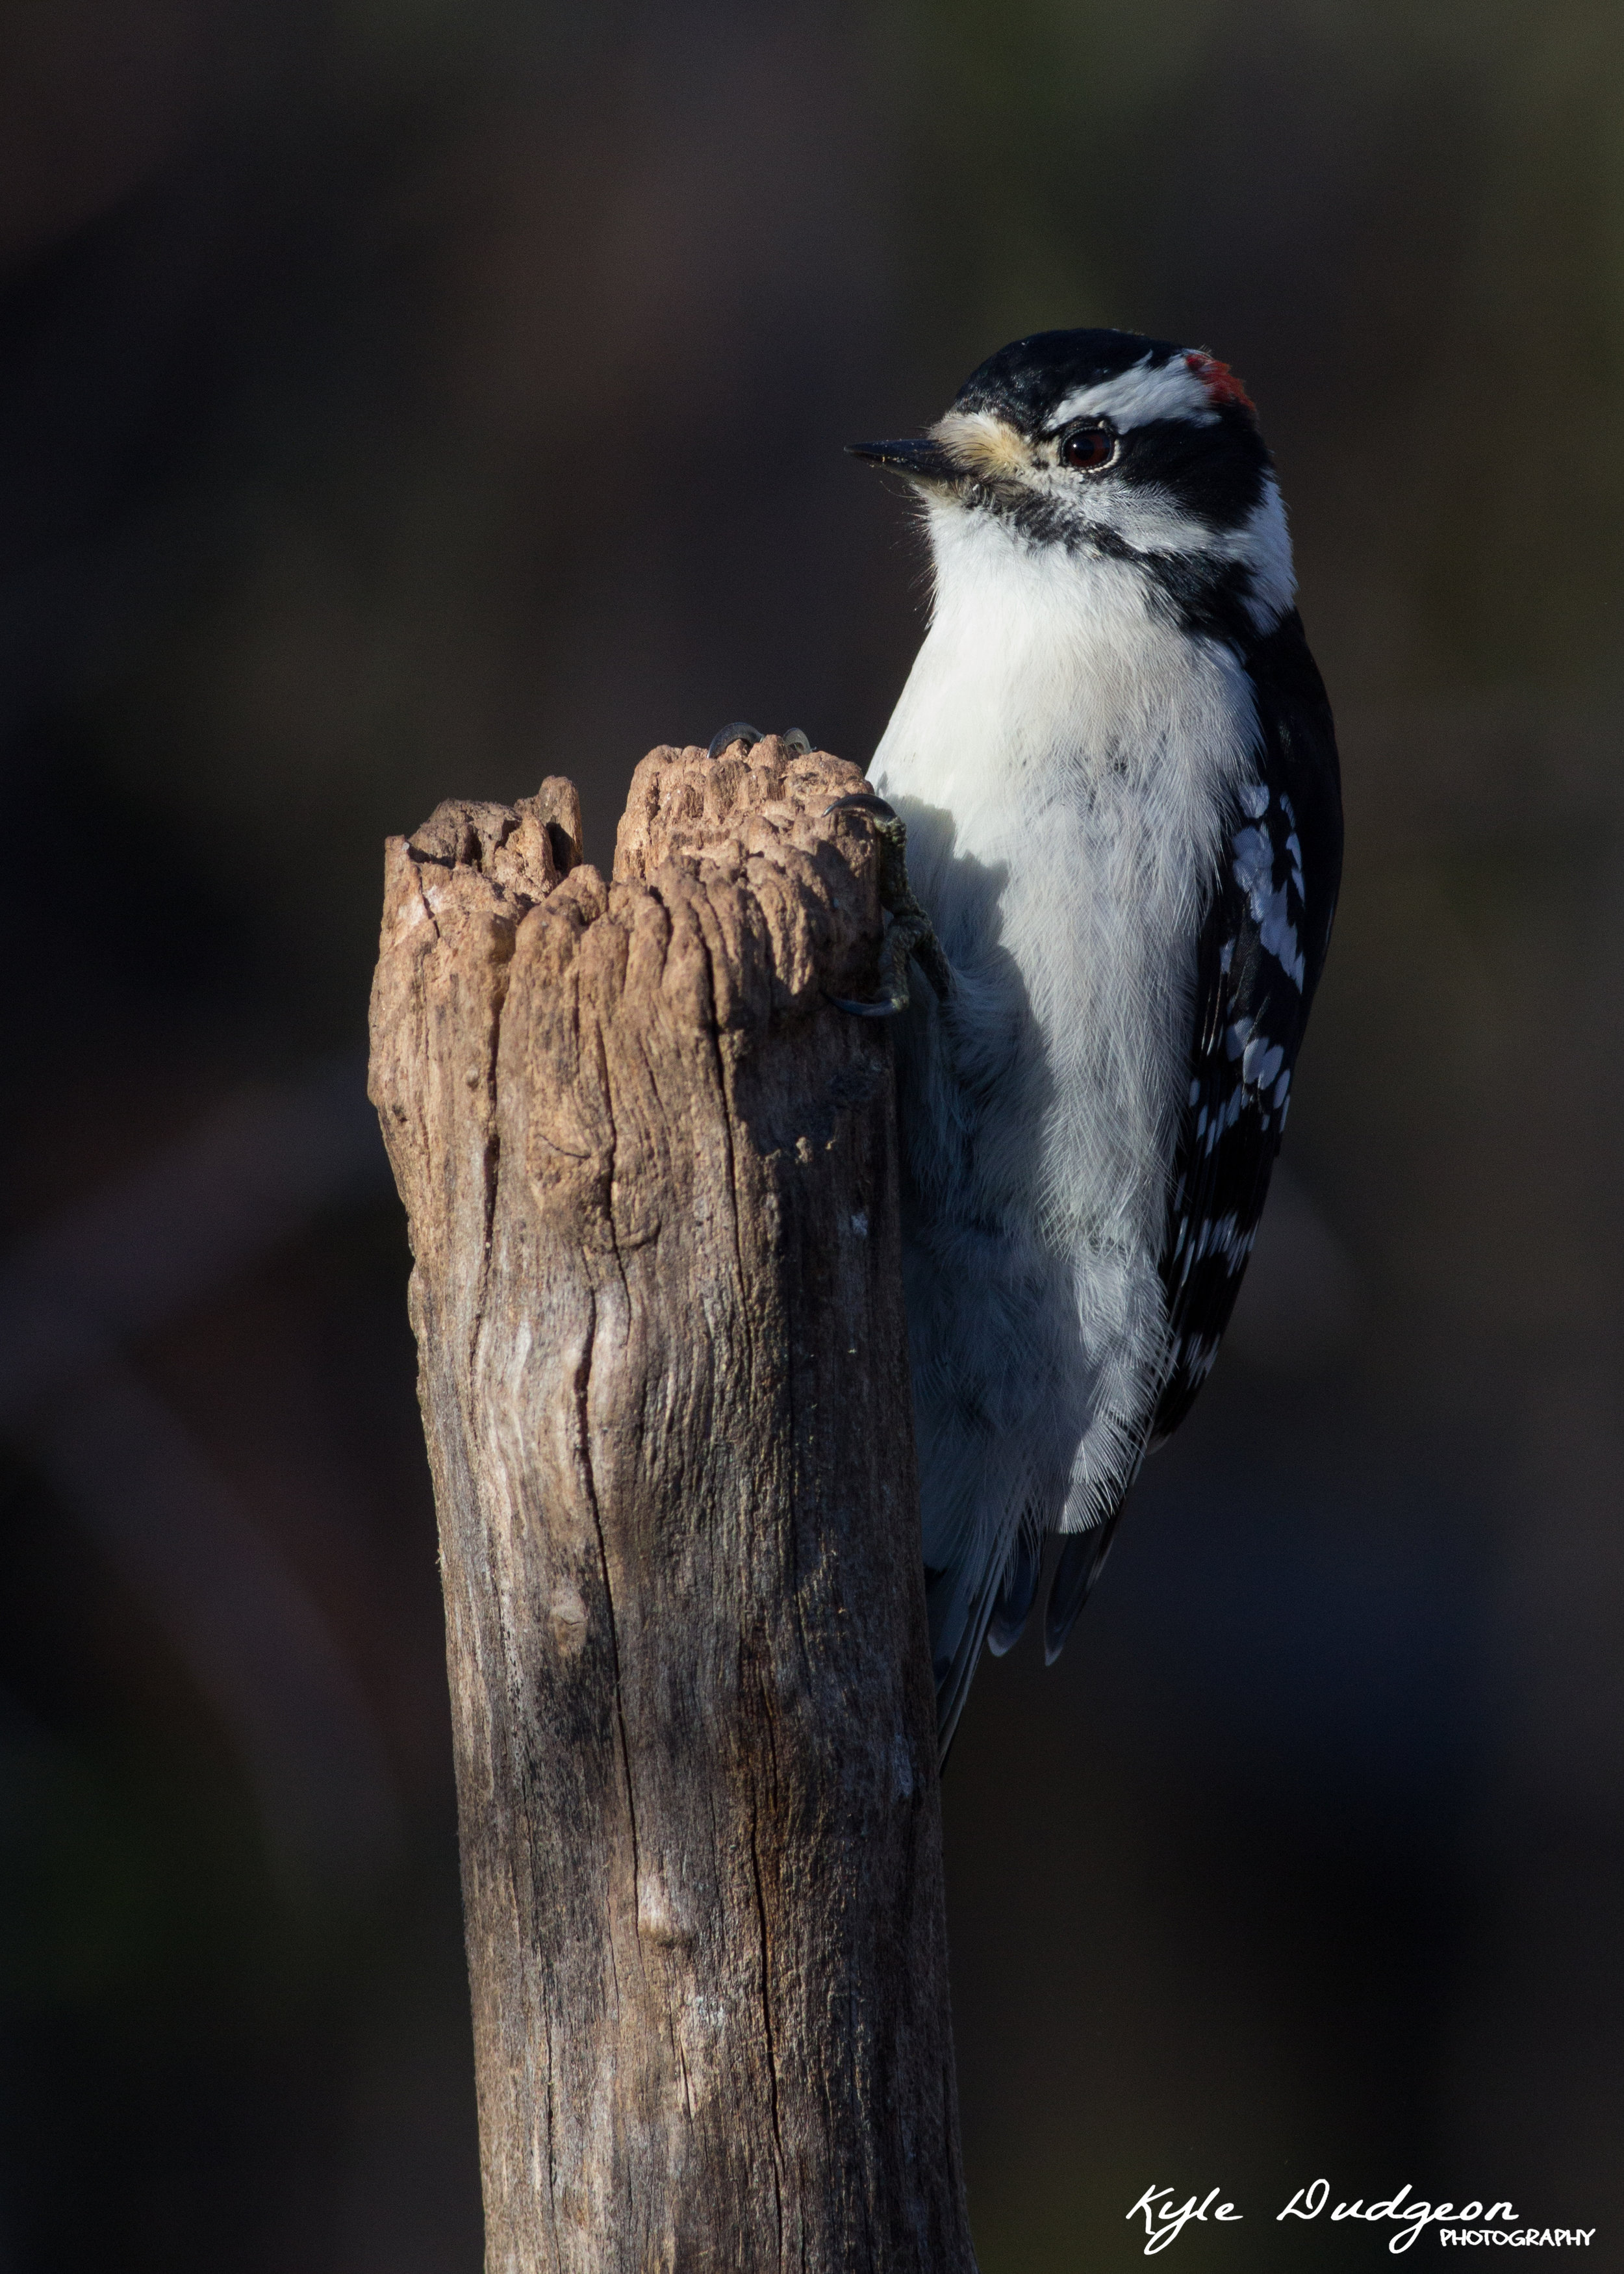 Downy woodpecker on a nice perch. There is a TON of detail here. 11/4/16.